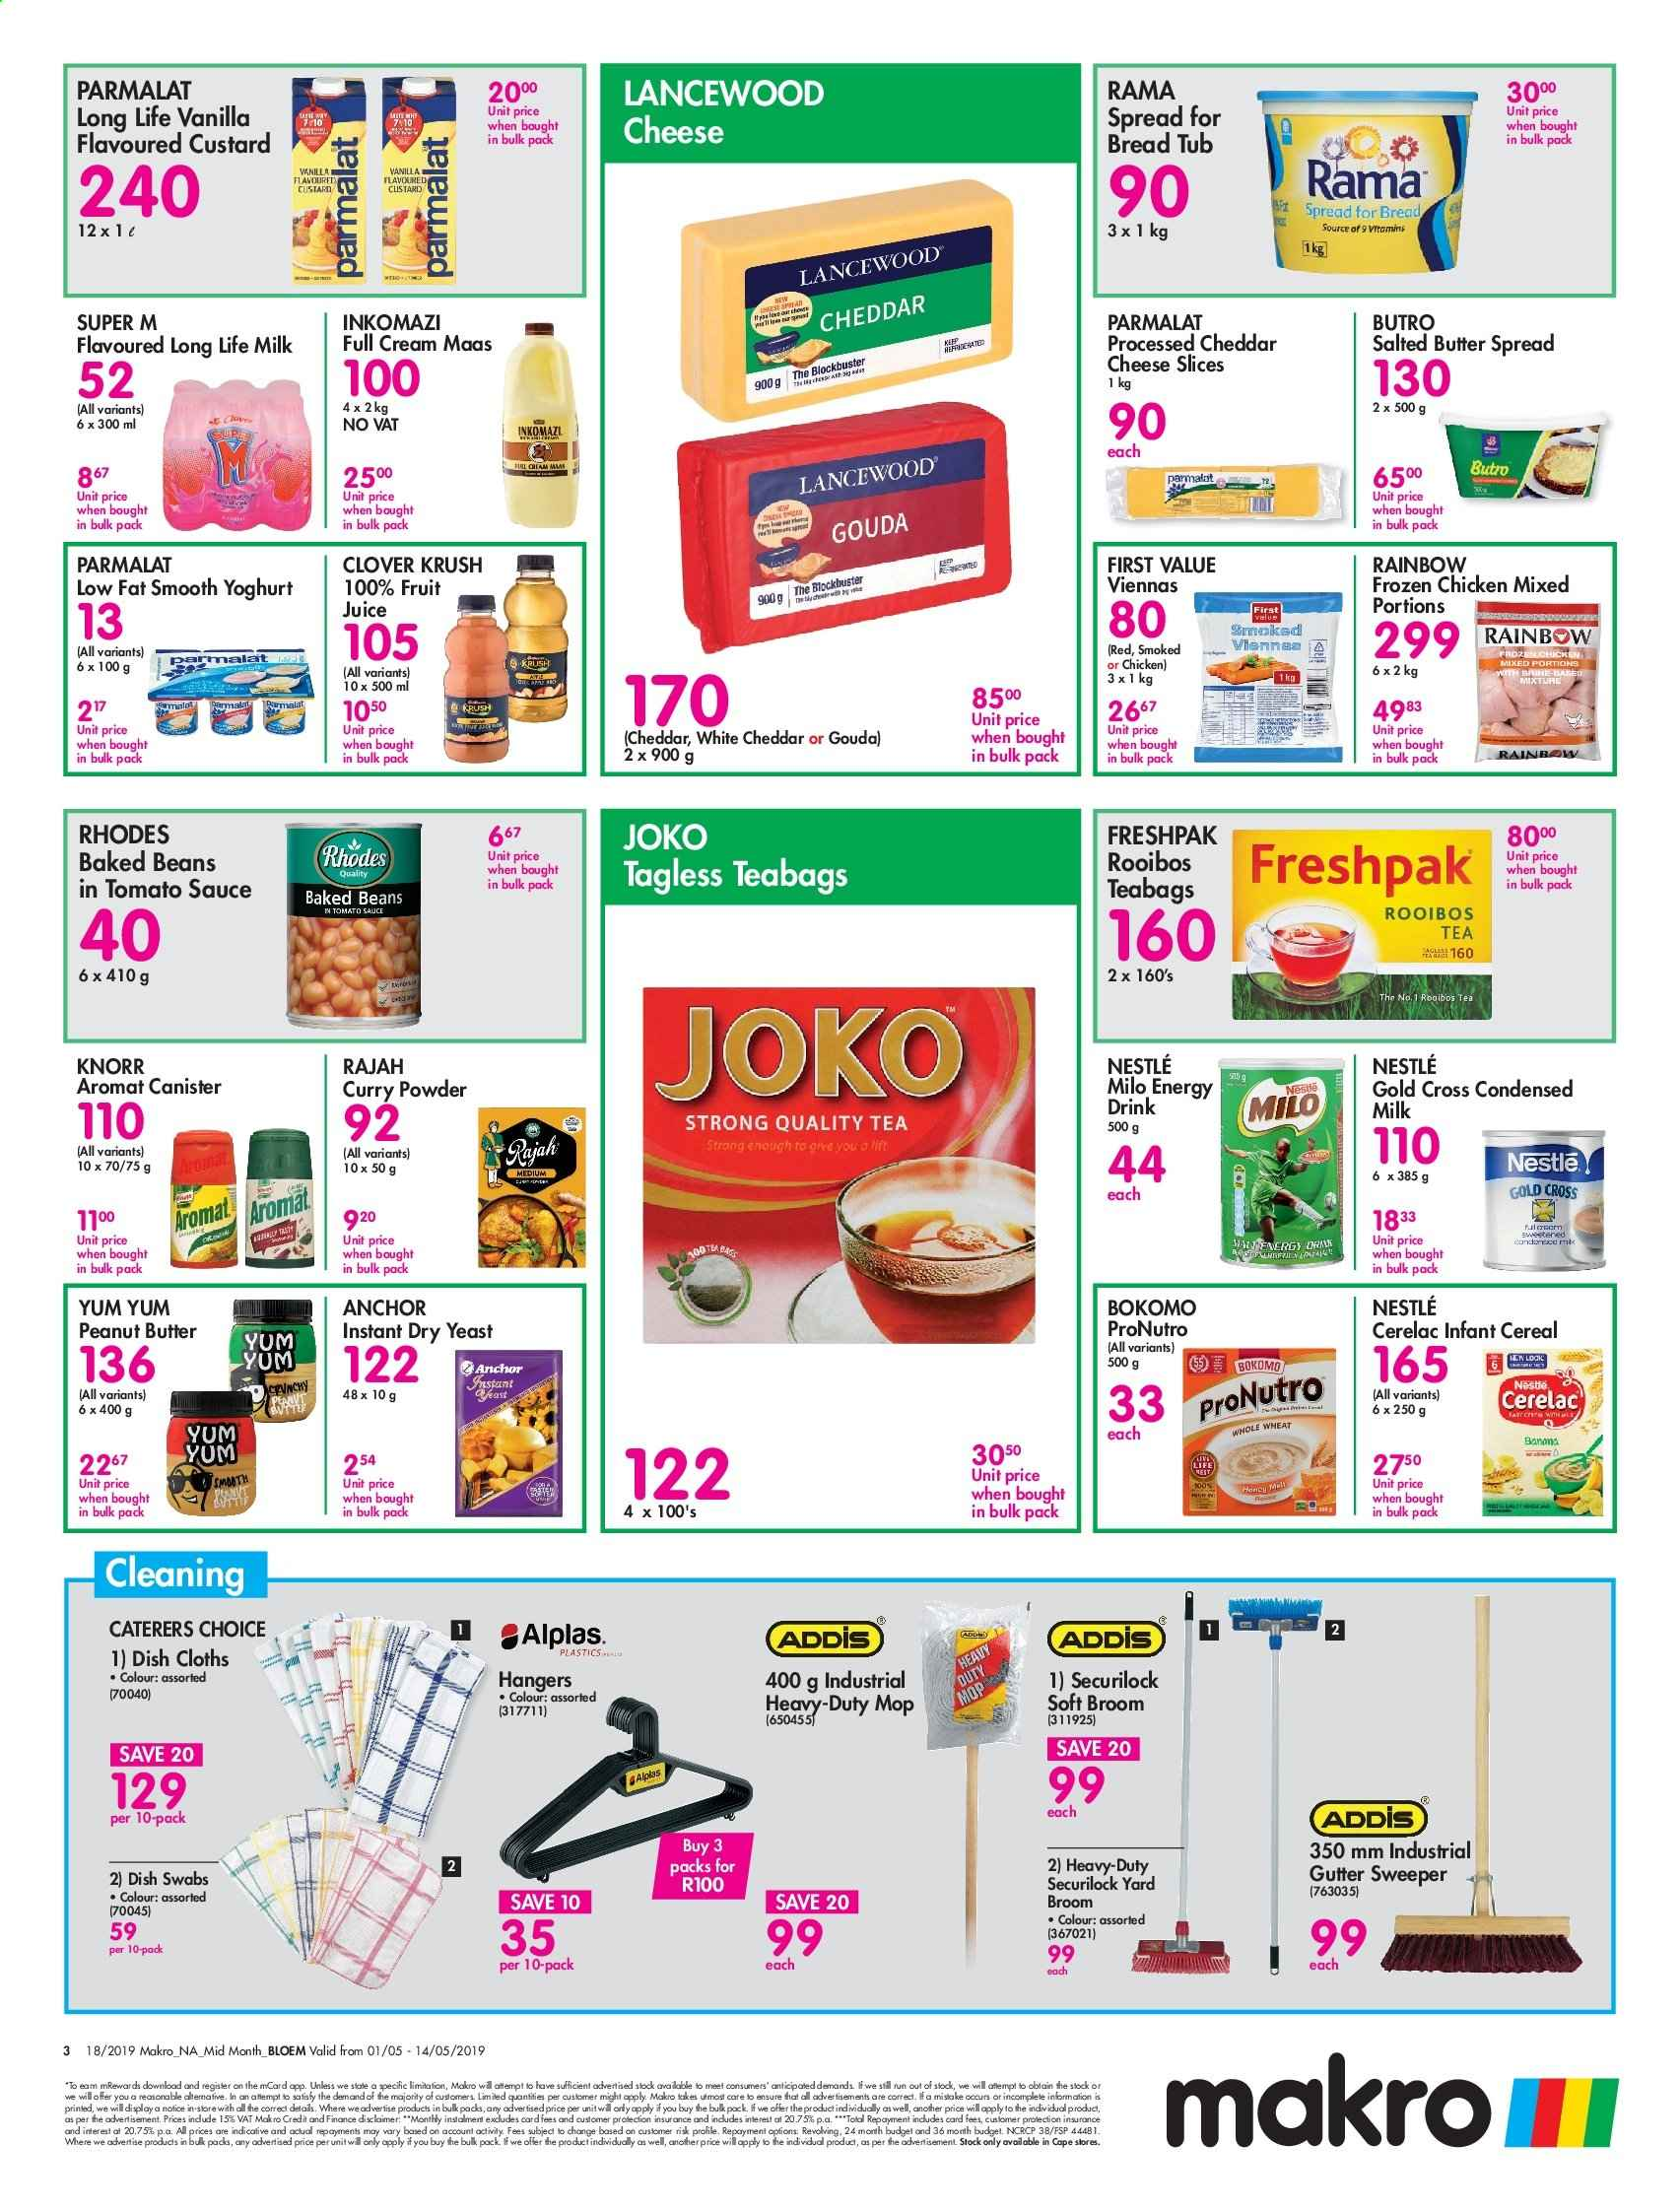 579cf6f558f8d Makro special - 05.01.2019 - 05.14.2019 - Sales products - beans,